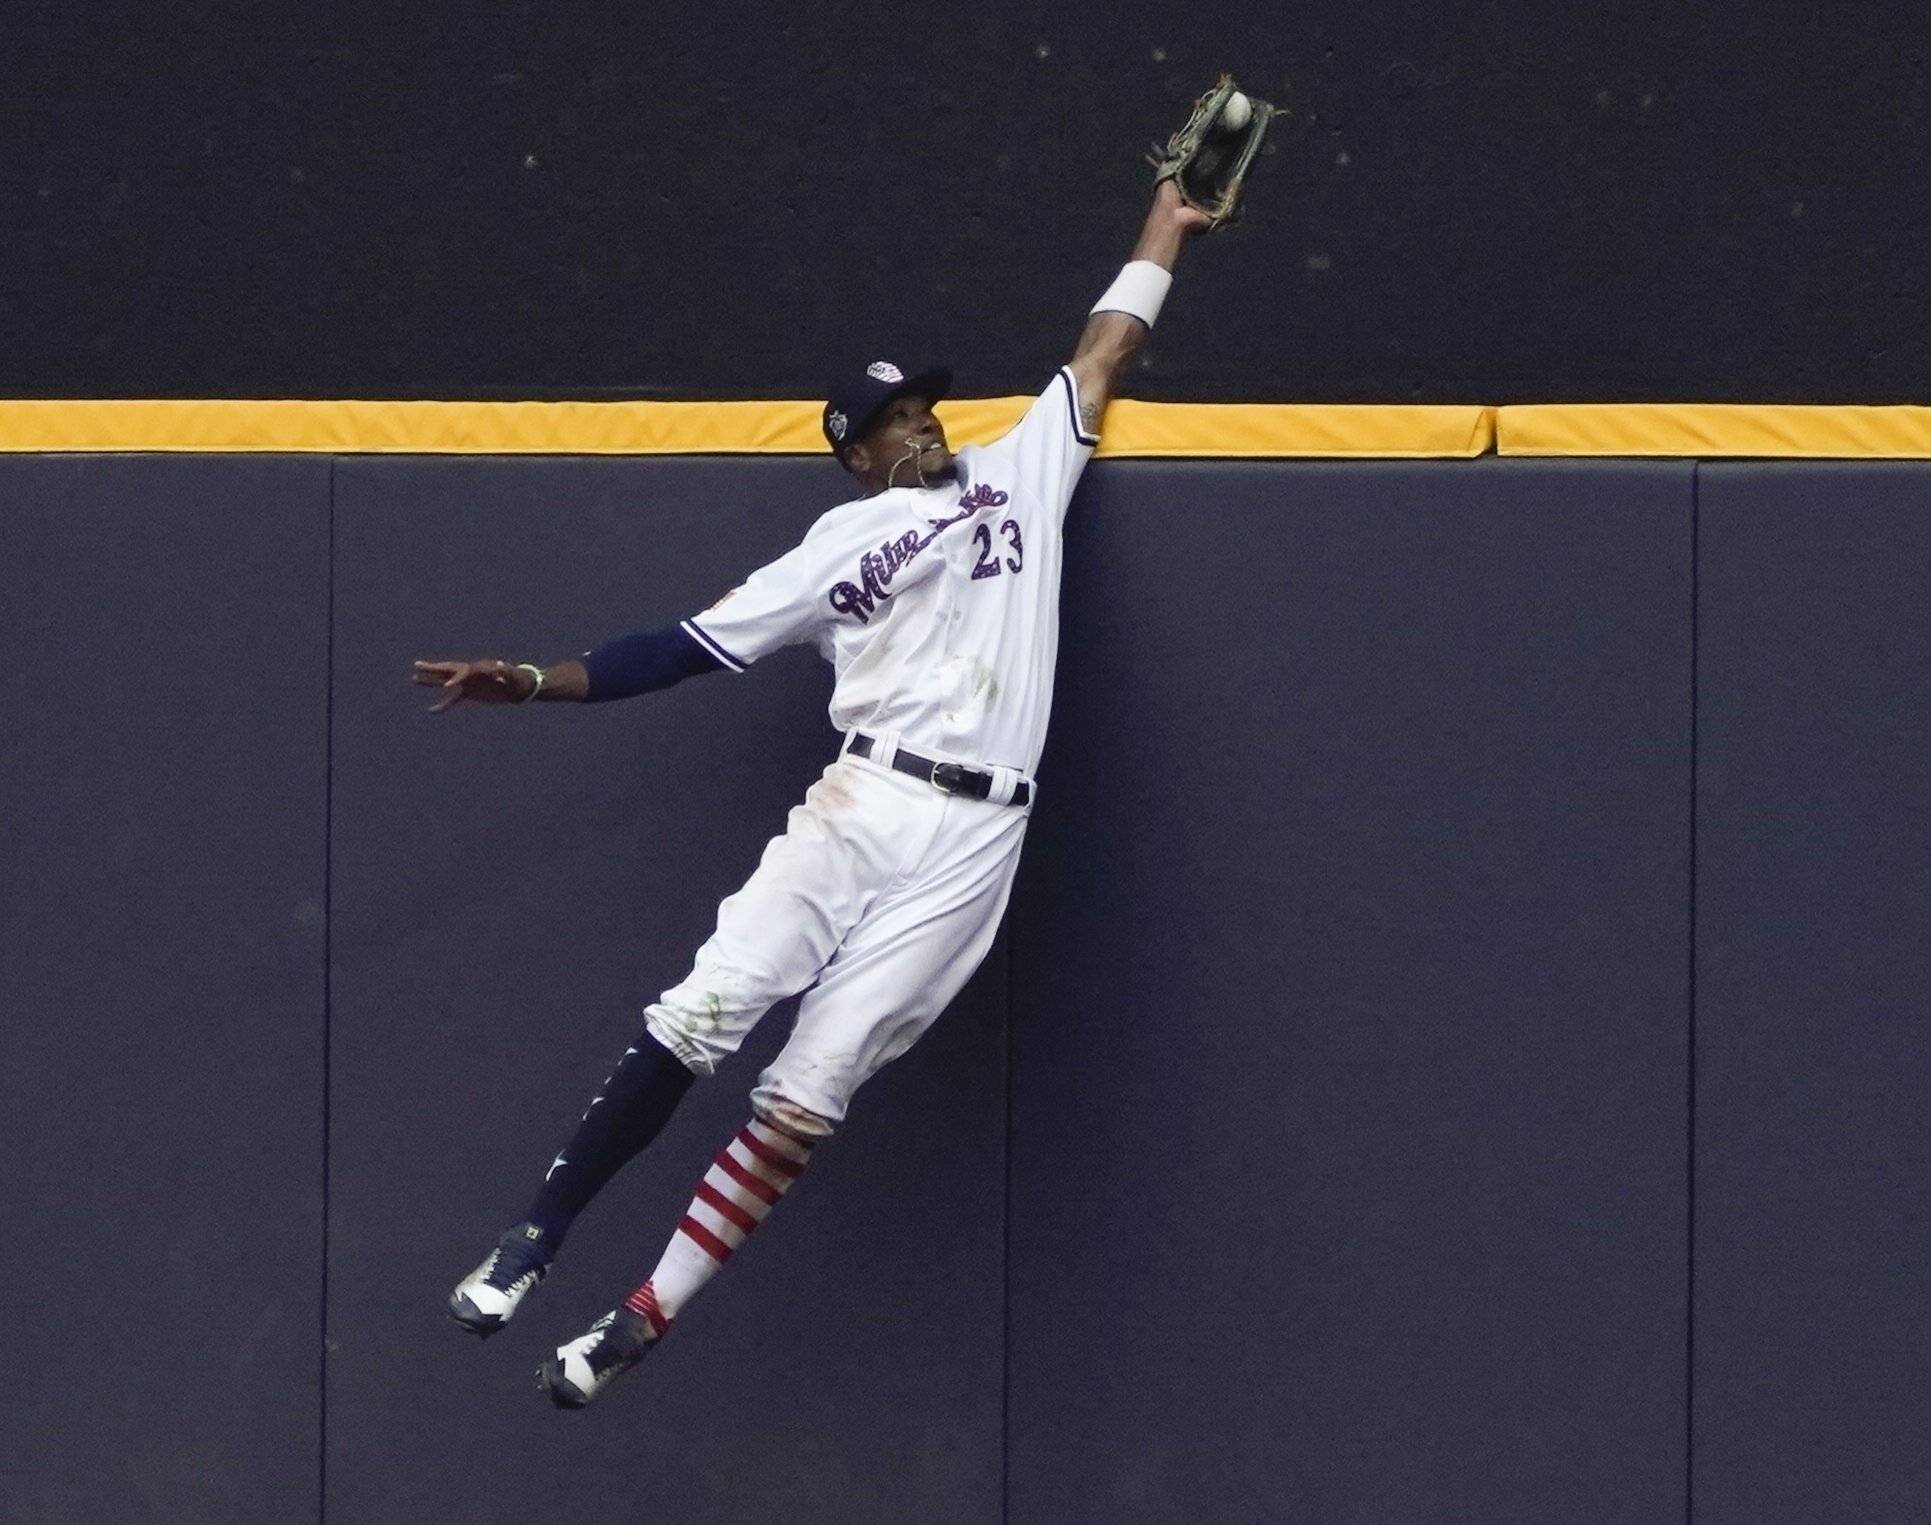 Home run robbers get praise - and swag for spectacular plays